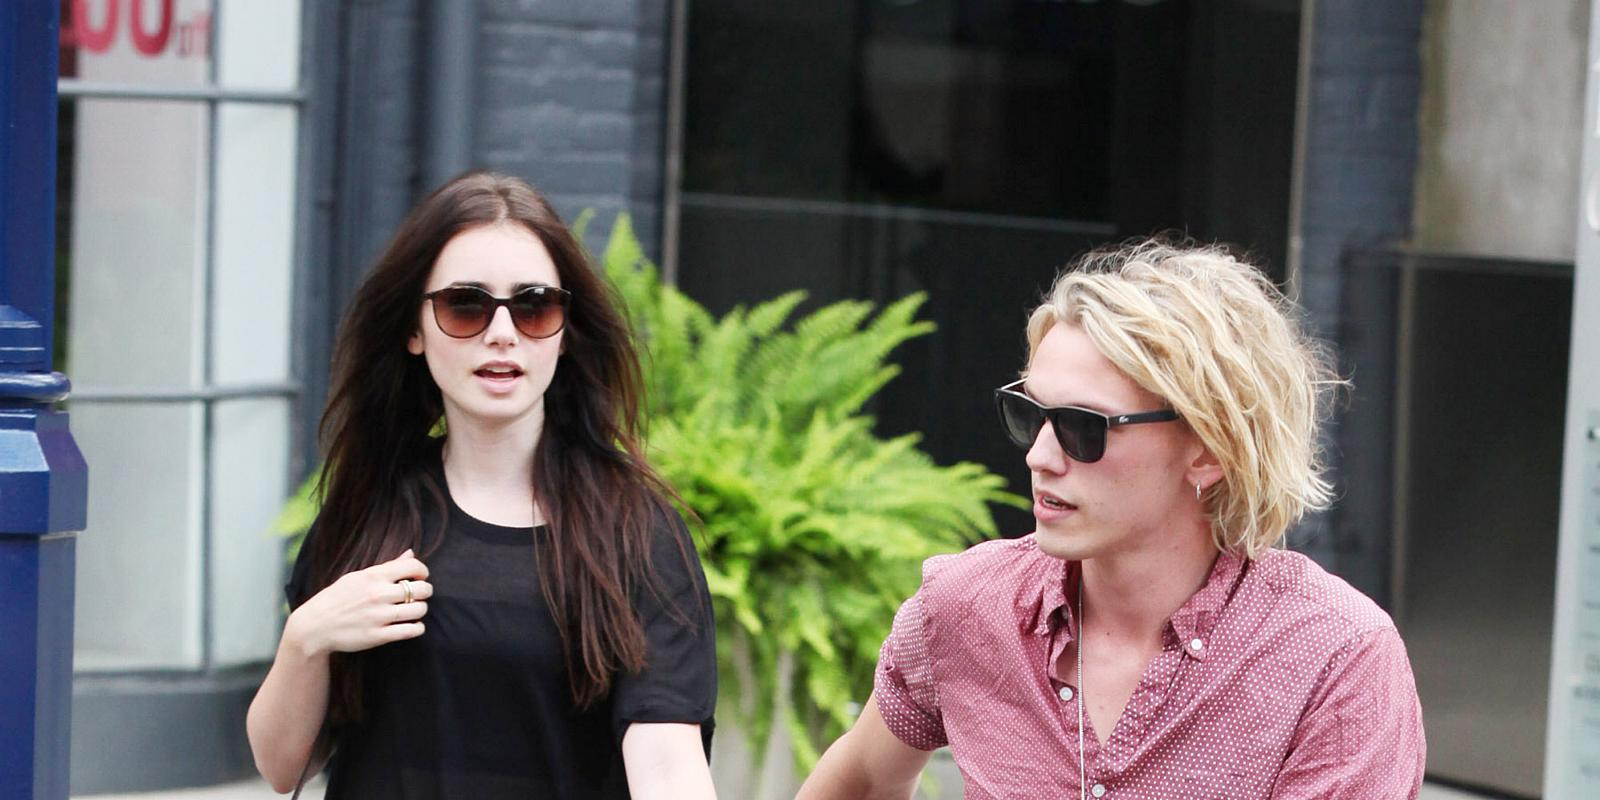 Jamie campbell bower dating now